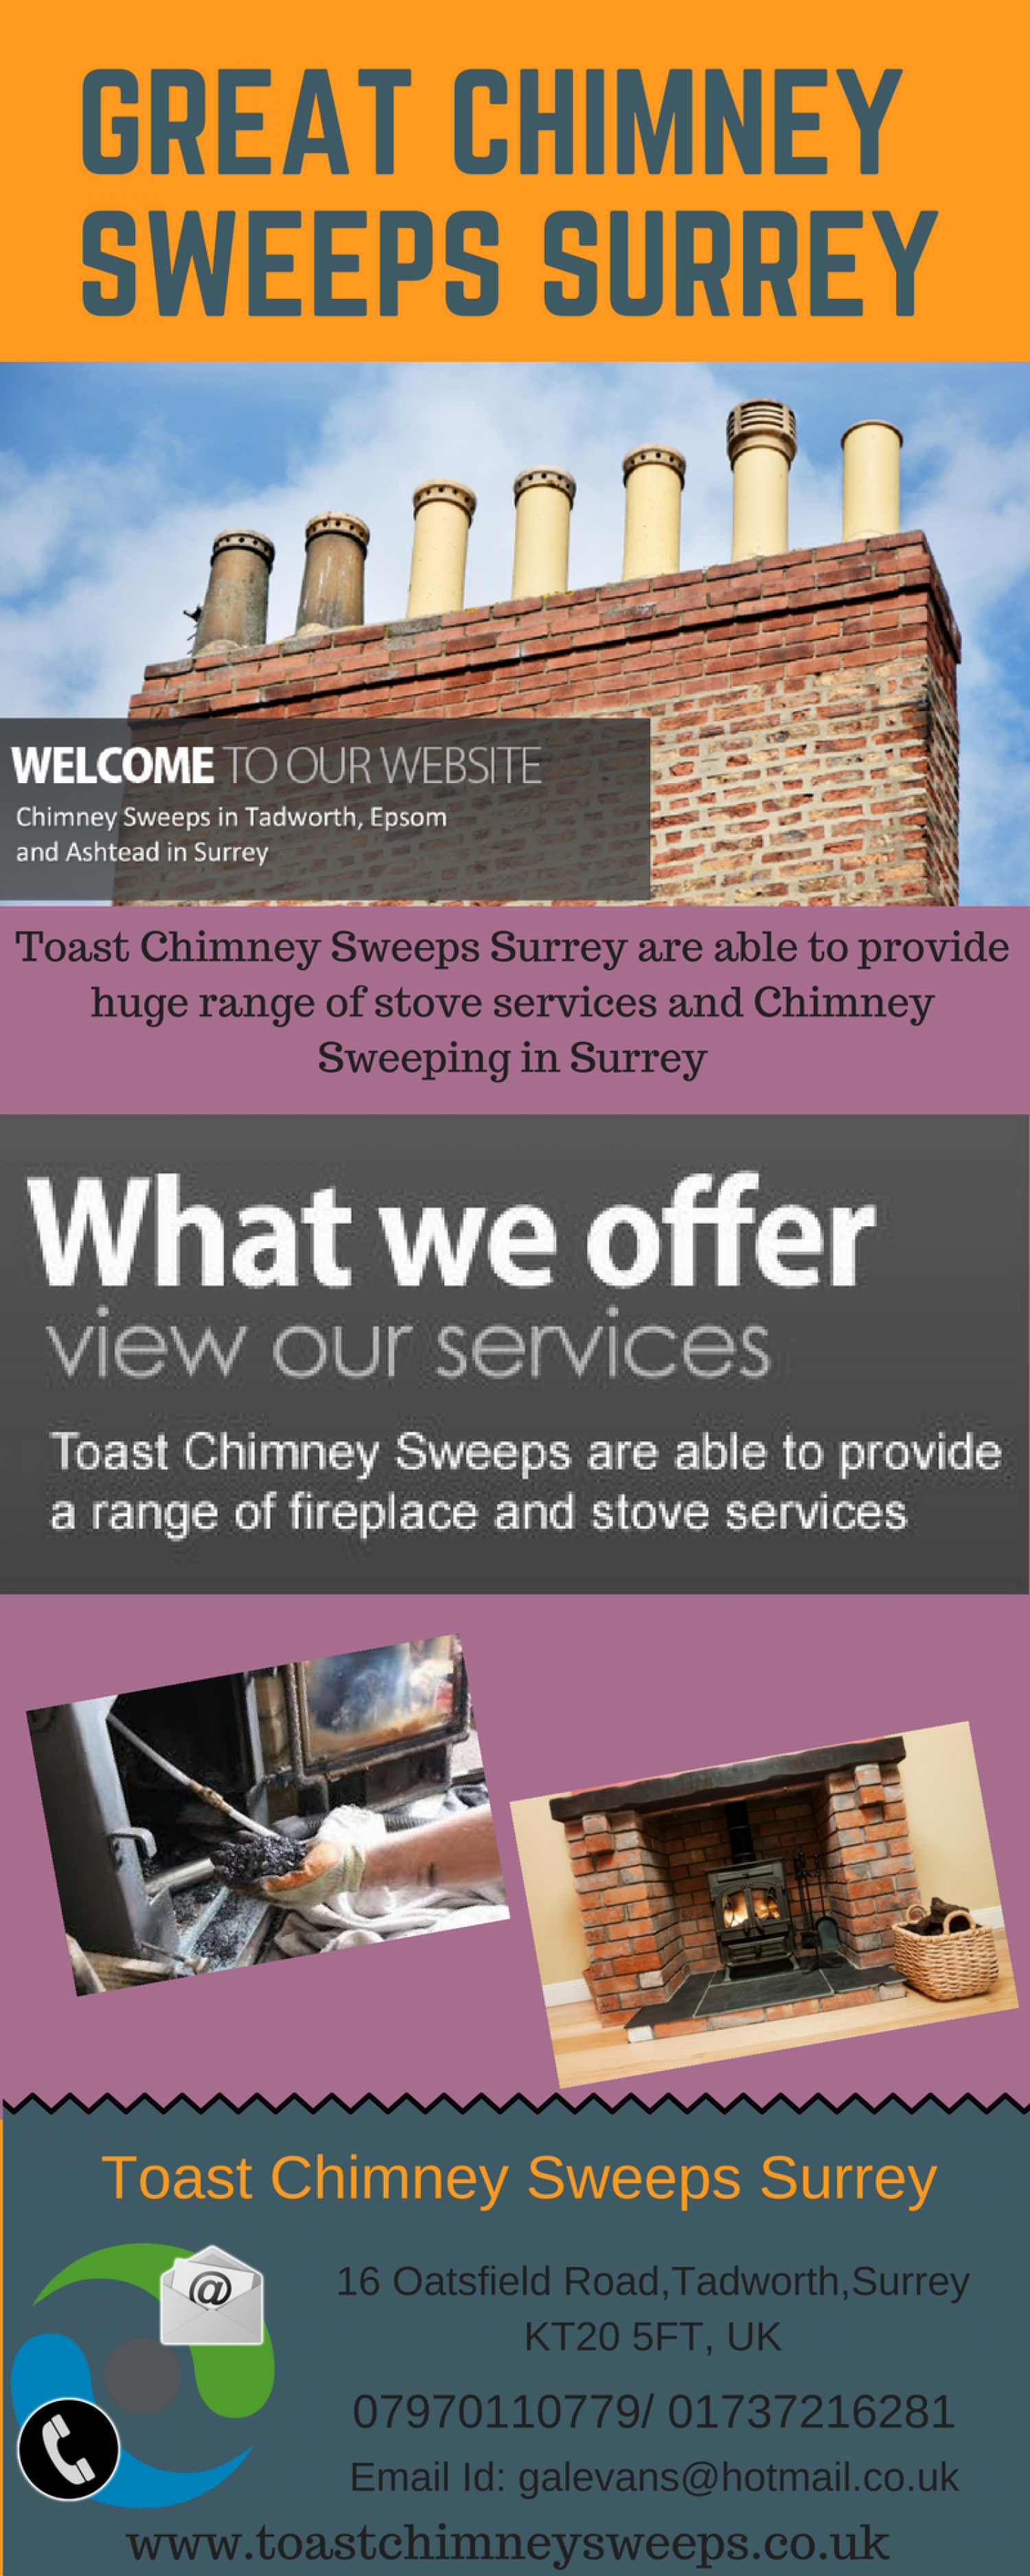 Great Chimney Sweeps Surrey Infographic